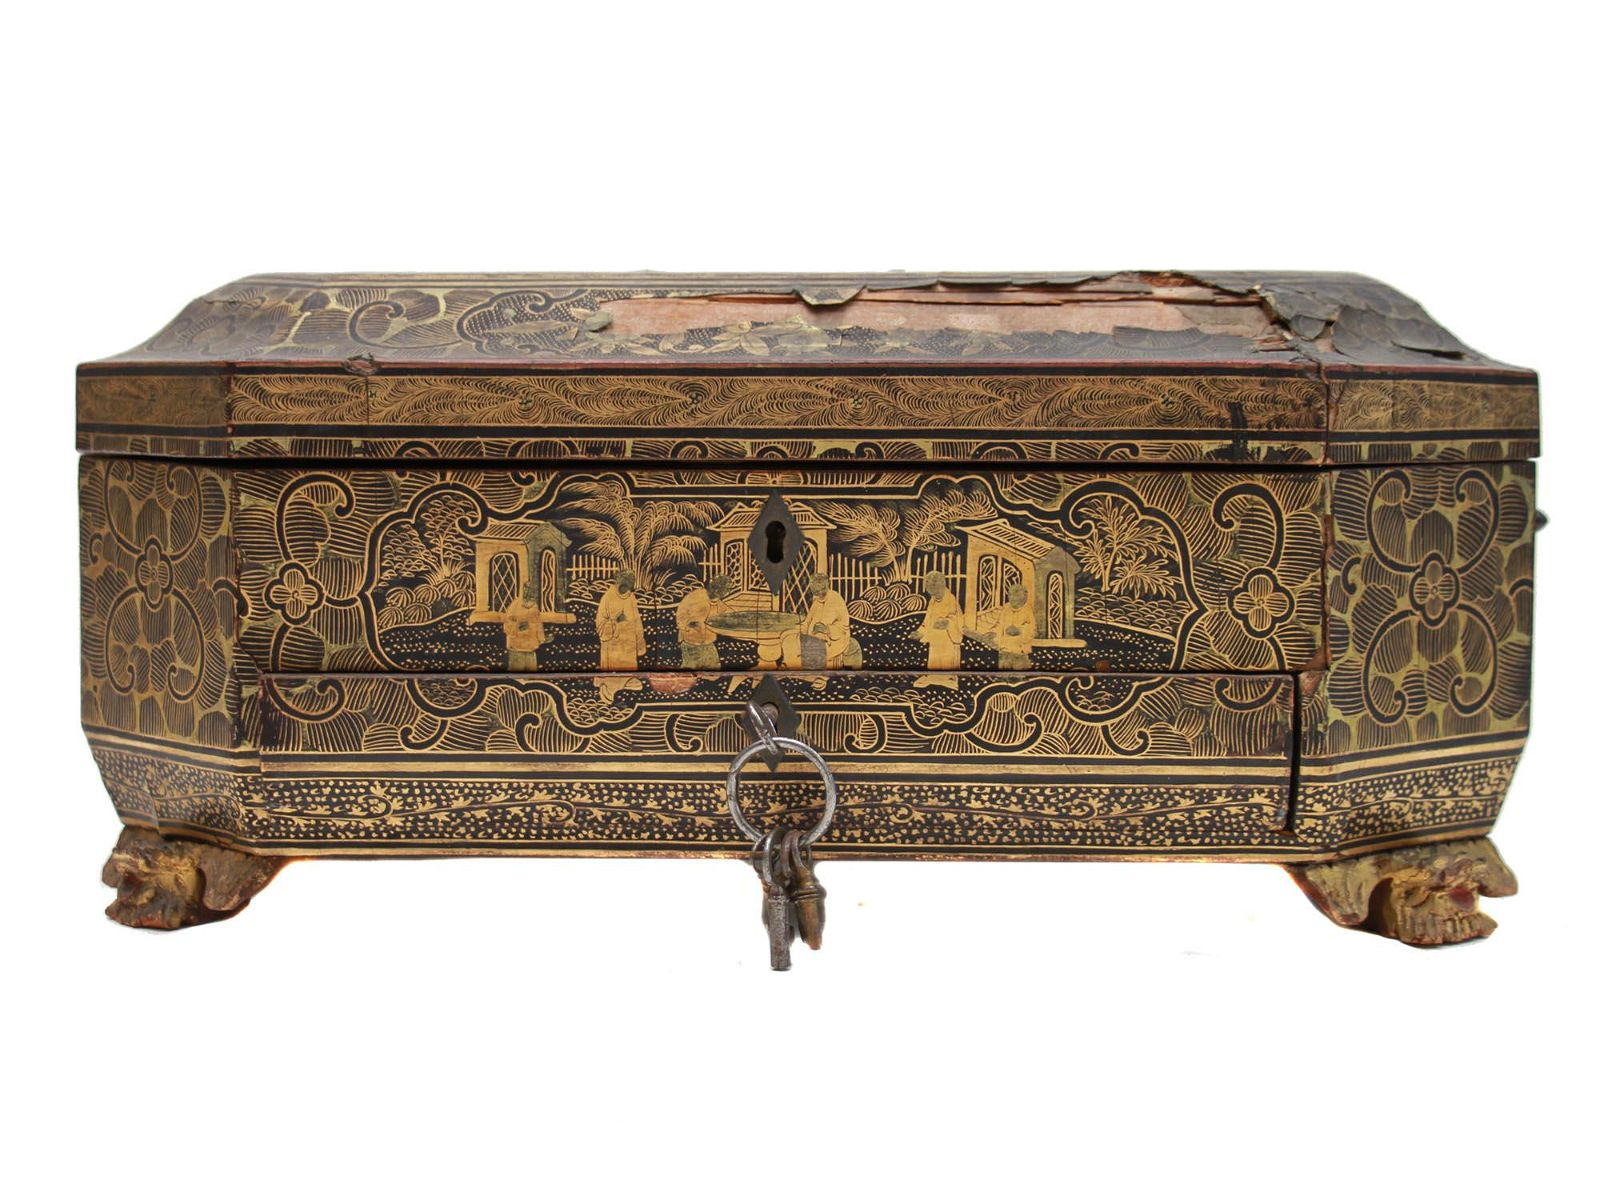 AN ANTIQUE CHINESE LACQUERED SEWING BOX 19TH C.